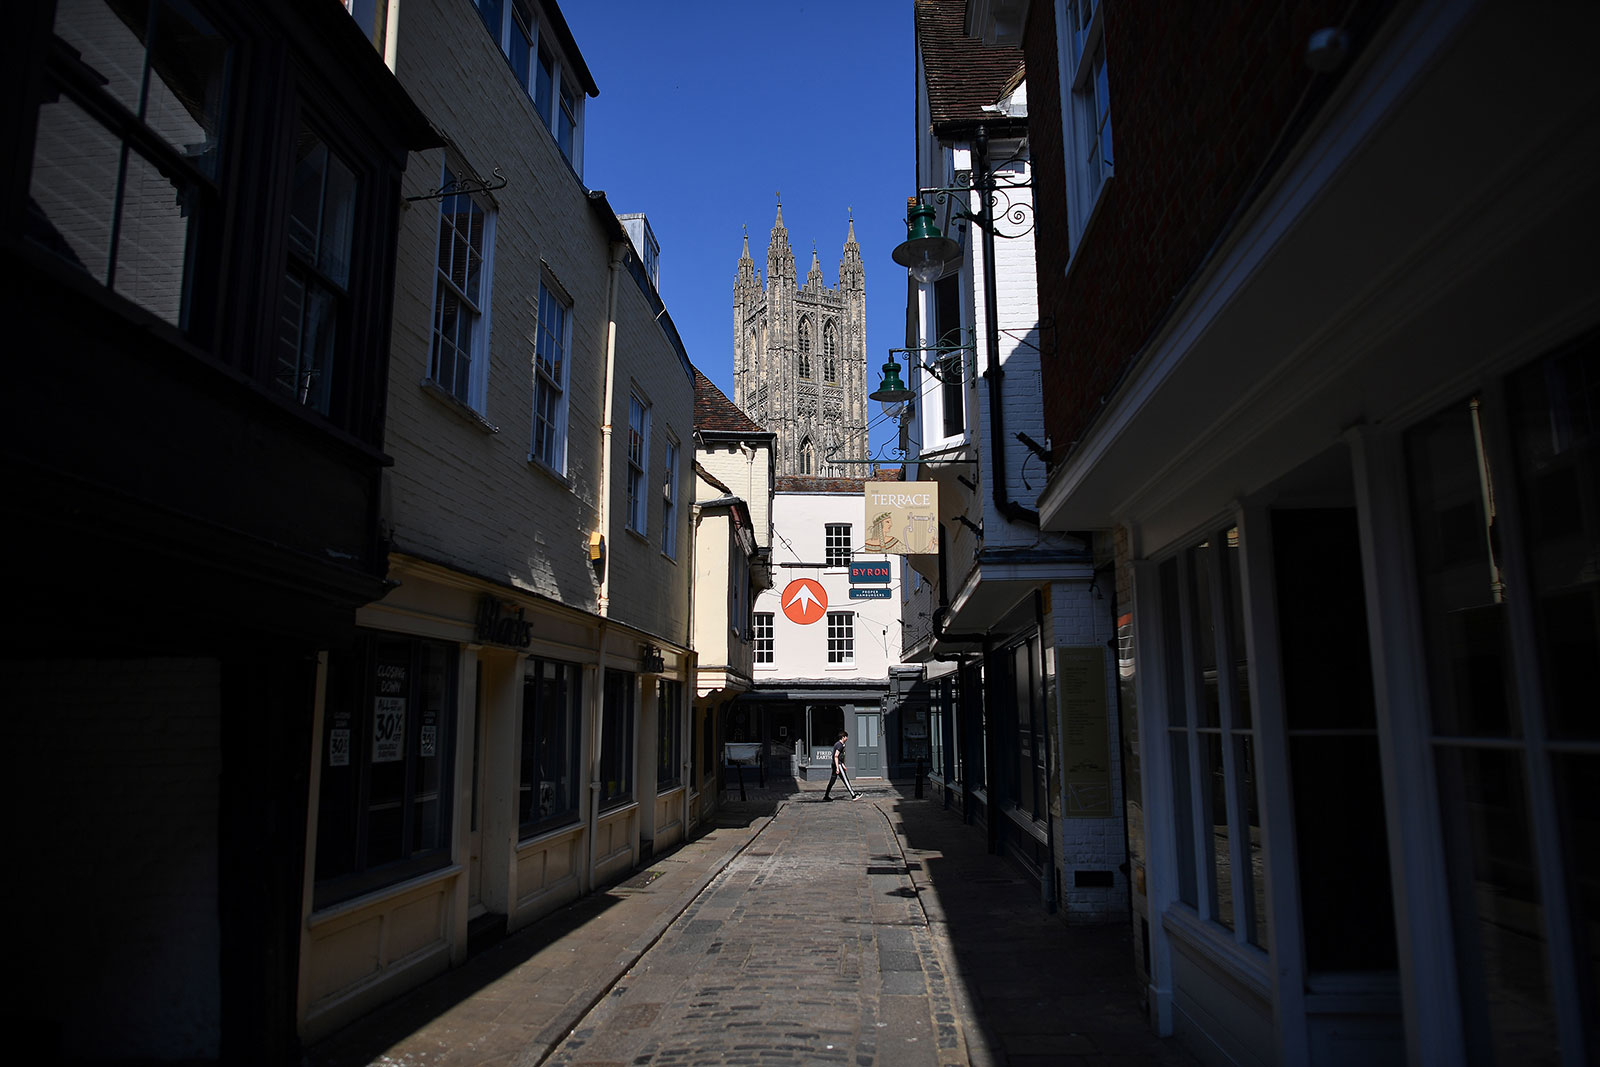 A person walks down a nearly empty street in Canterbury, England, on April 11.